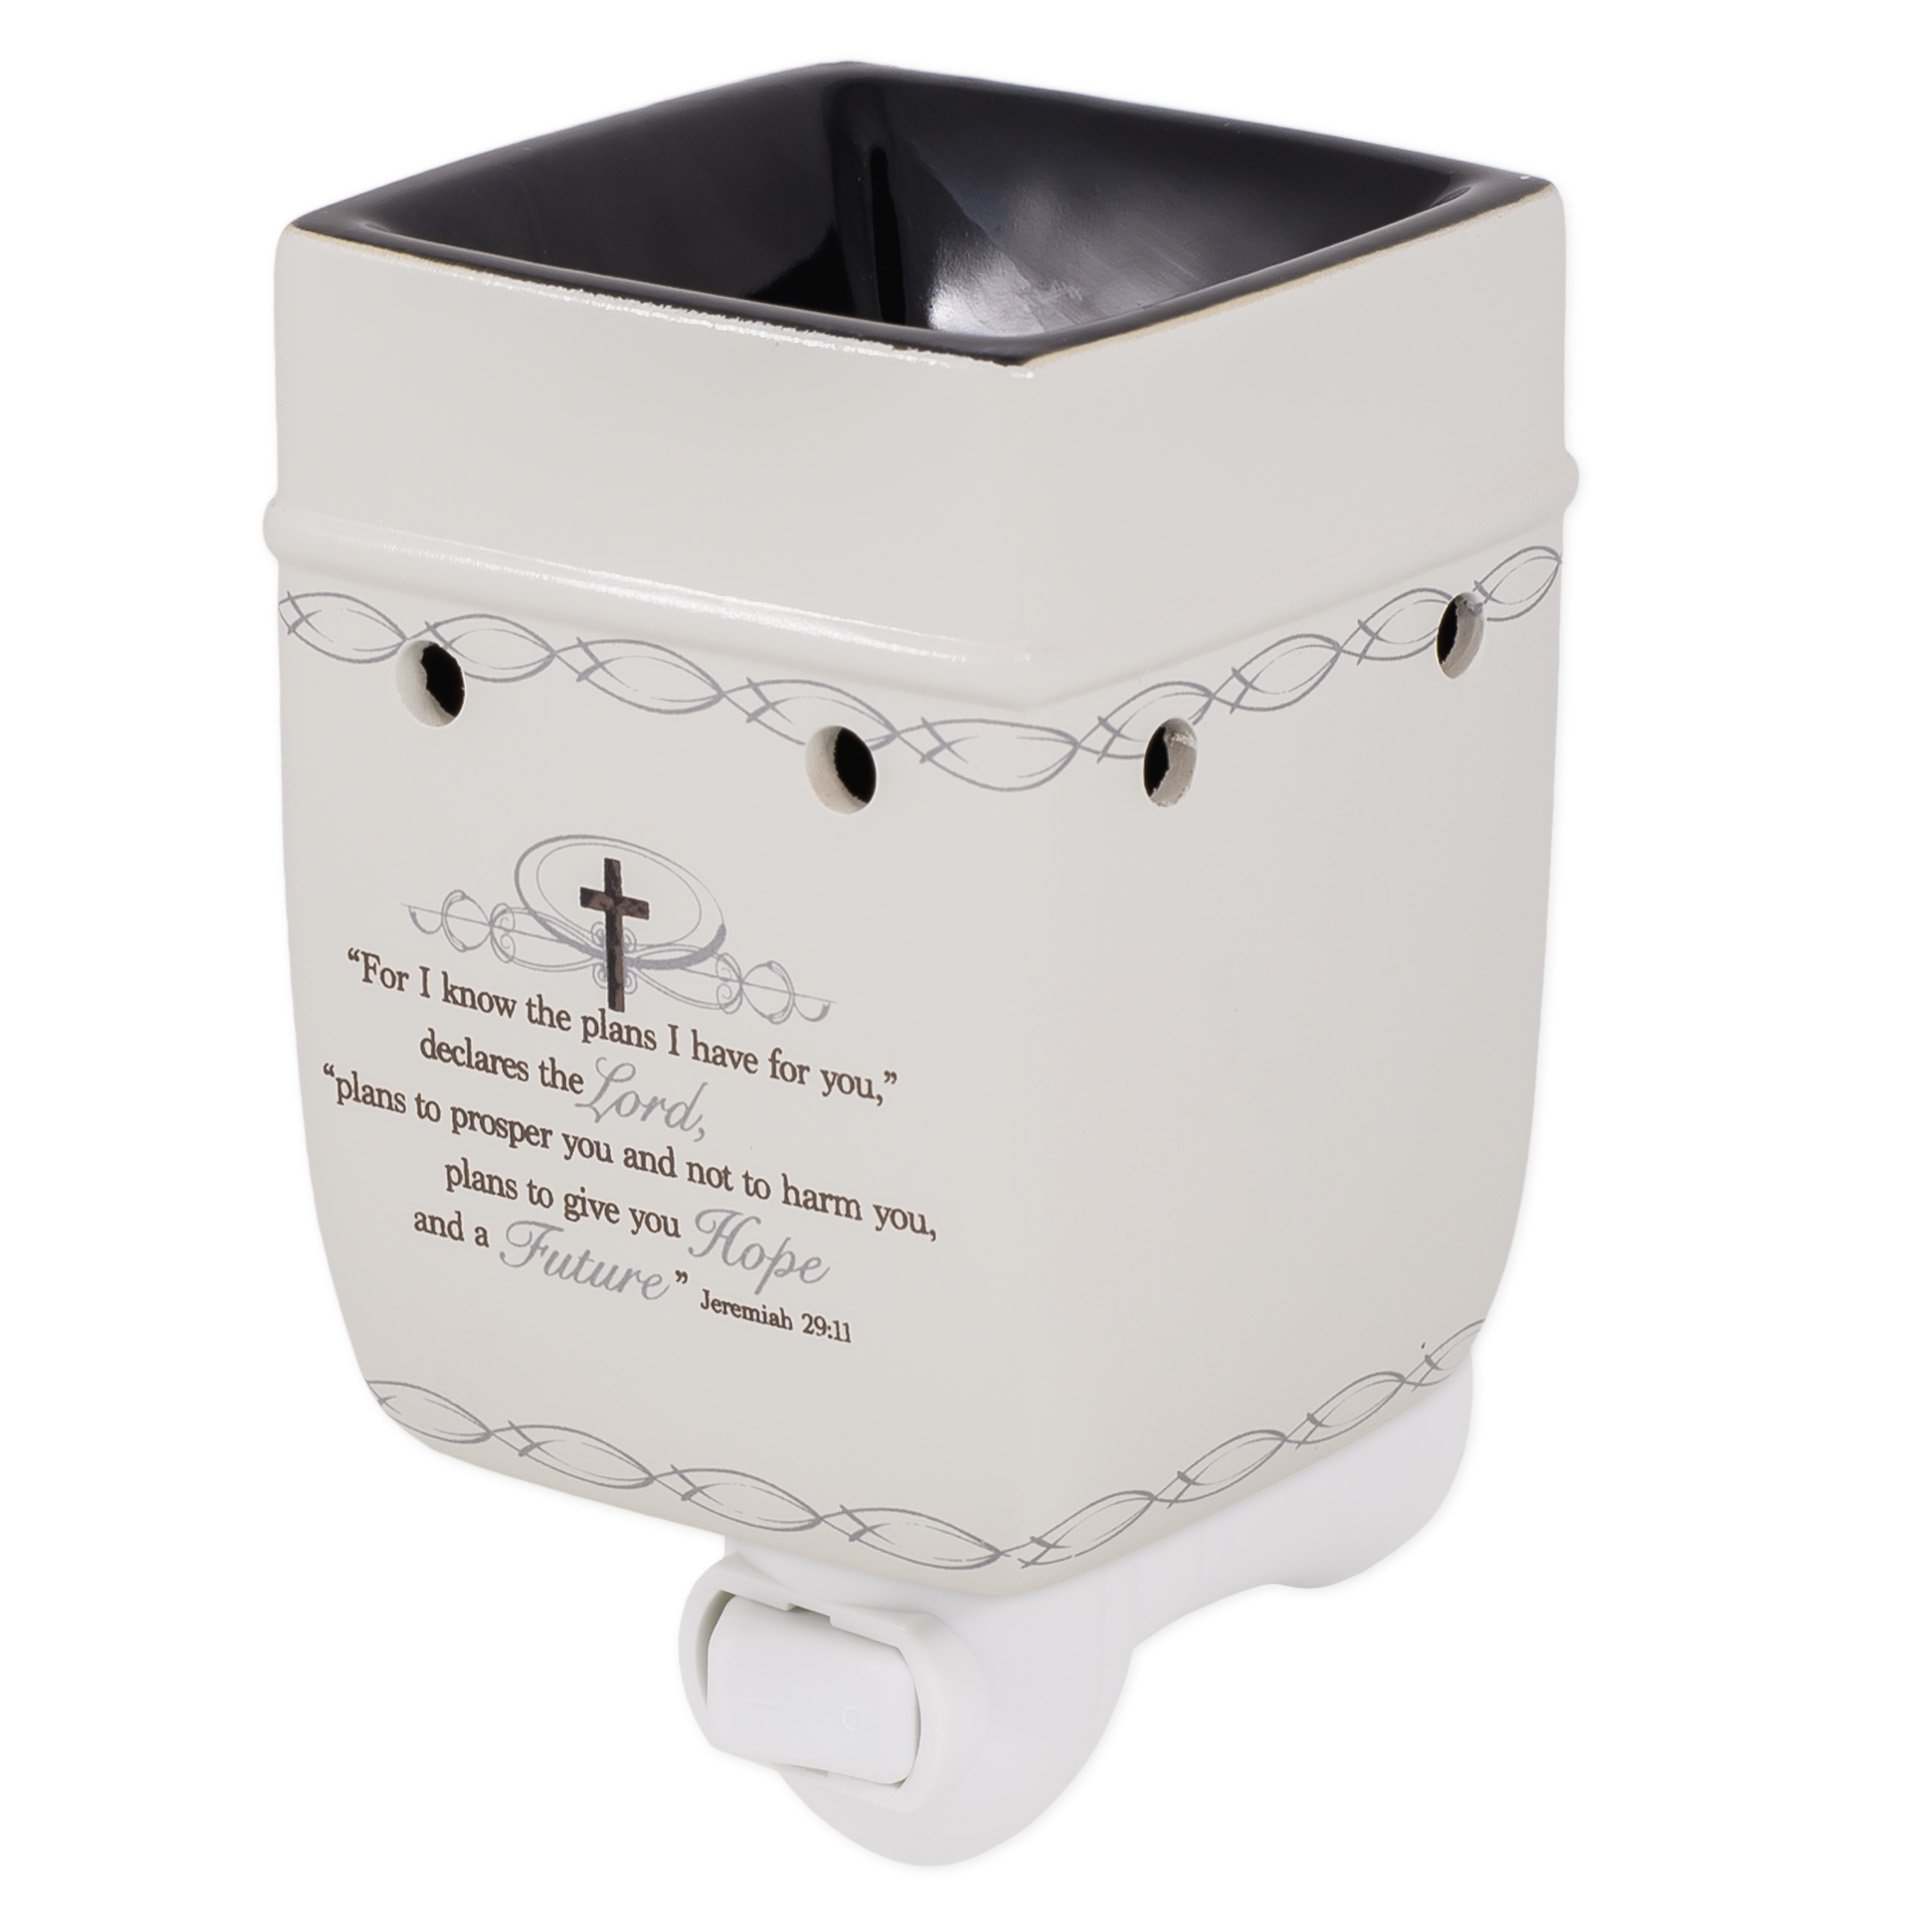 Elanze Designs For I Know the Plans I Have For You Jeremiah 29:11 Electric Plug-in Outlet Wax and Oil Warmer